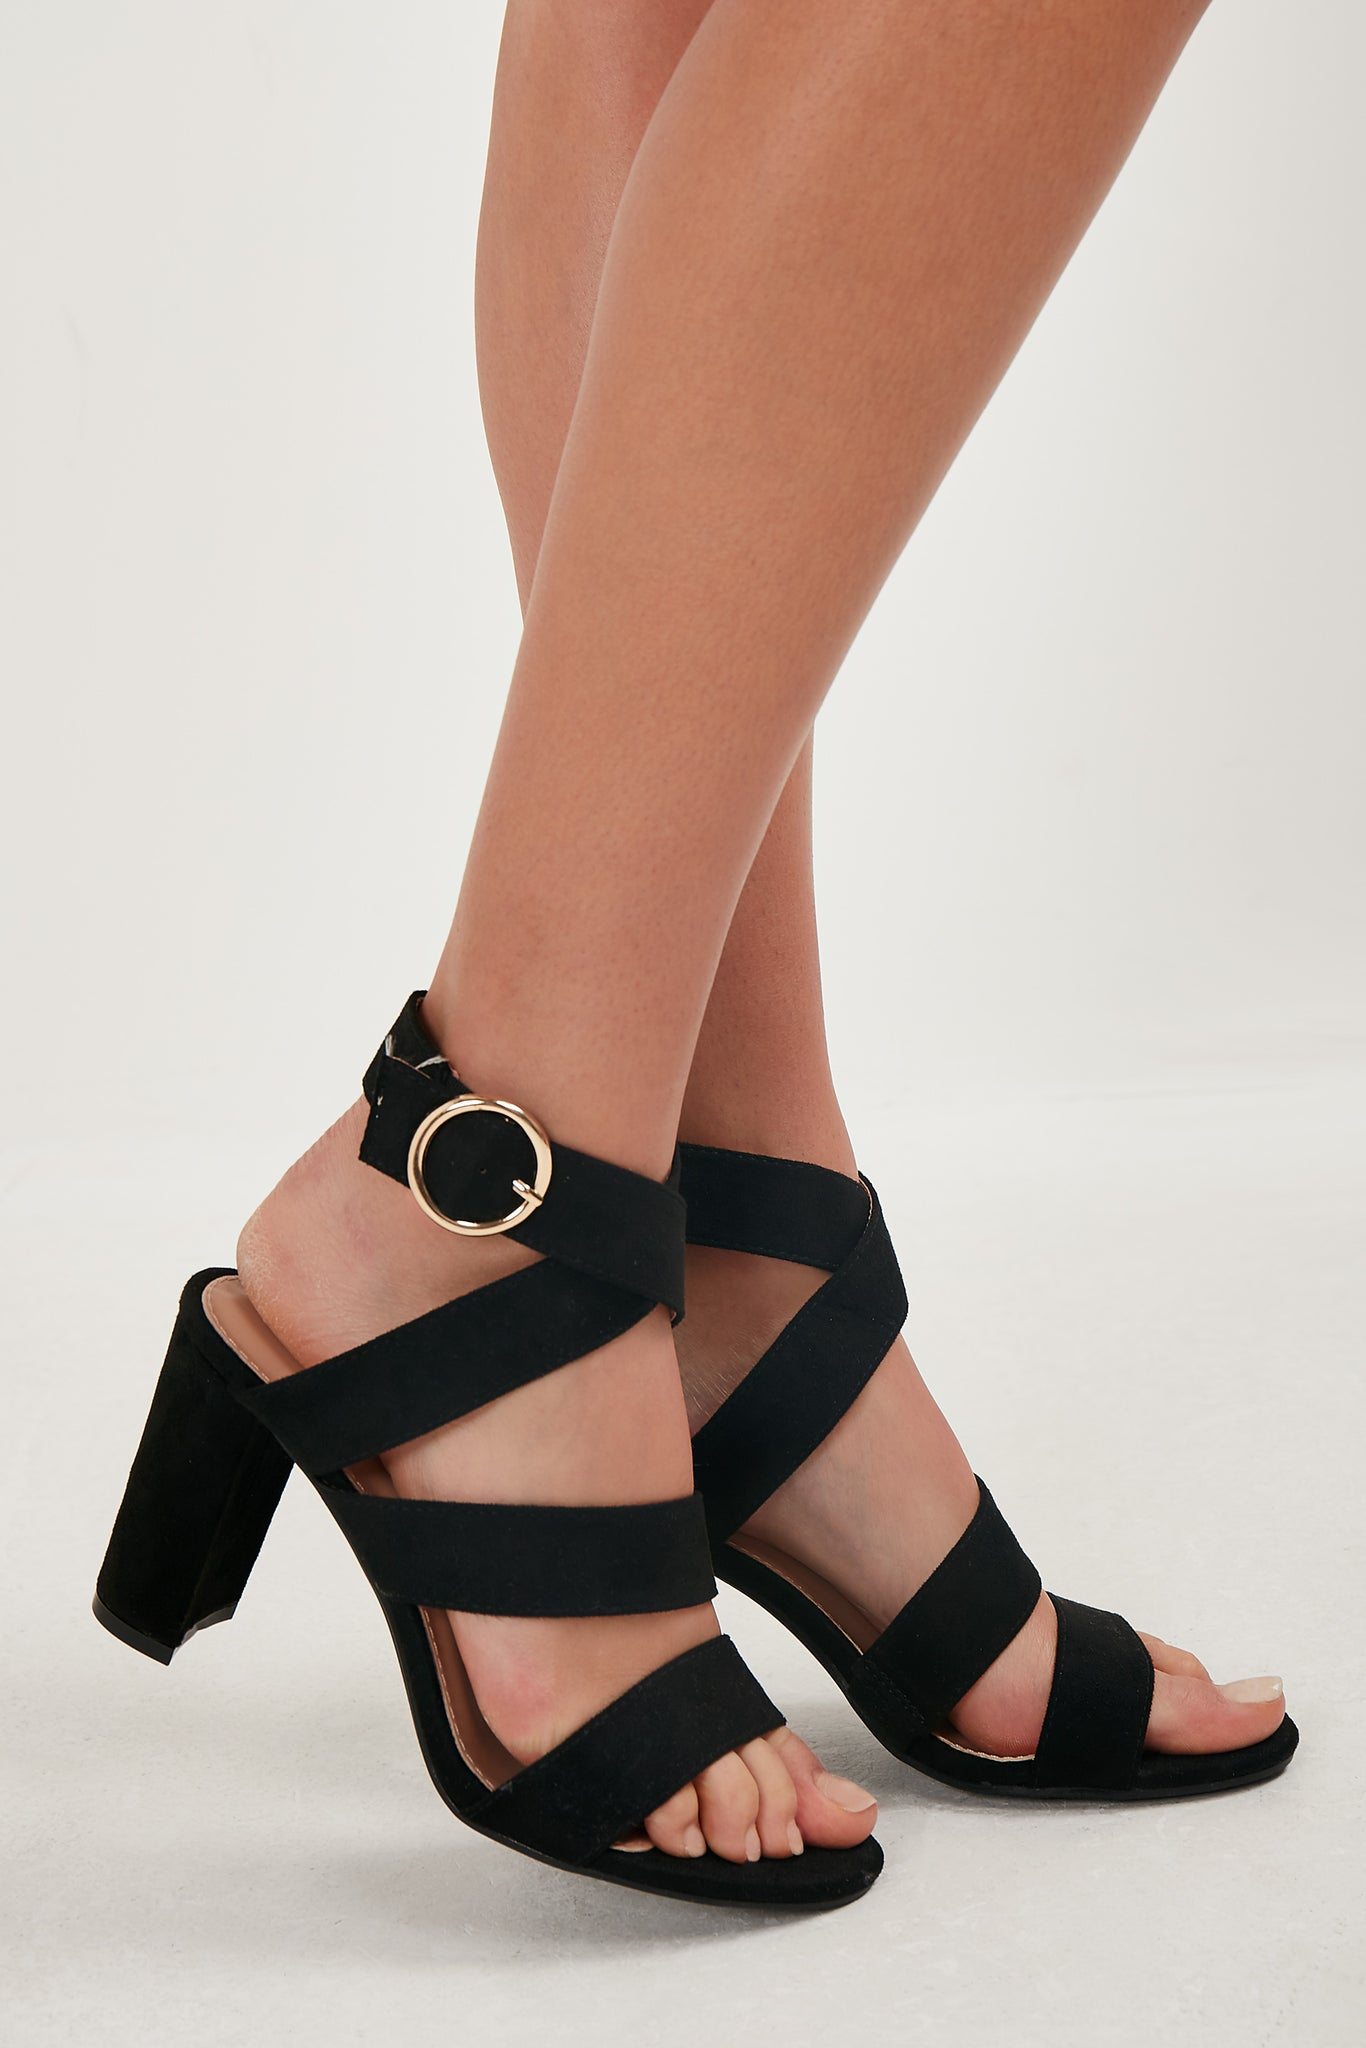 627417e8fed Teegan Black Strappy Block Heel Sandal. €33.99. Previous